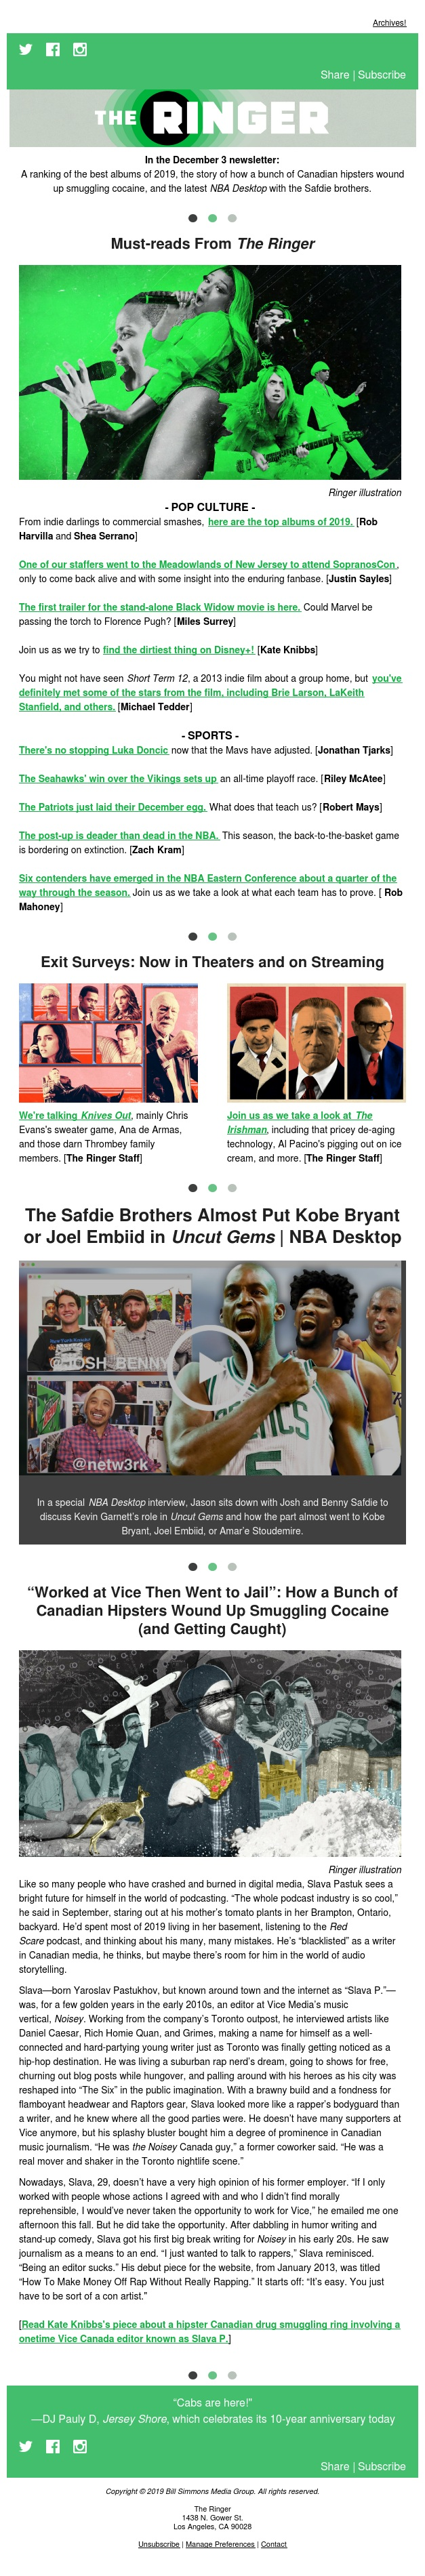 Kevin Garnett's Role in 'Uncut Gems' Almost Went to These NBA Players